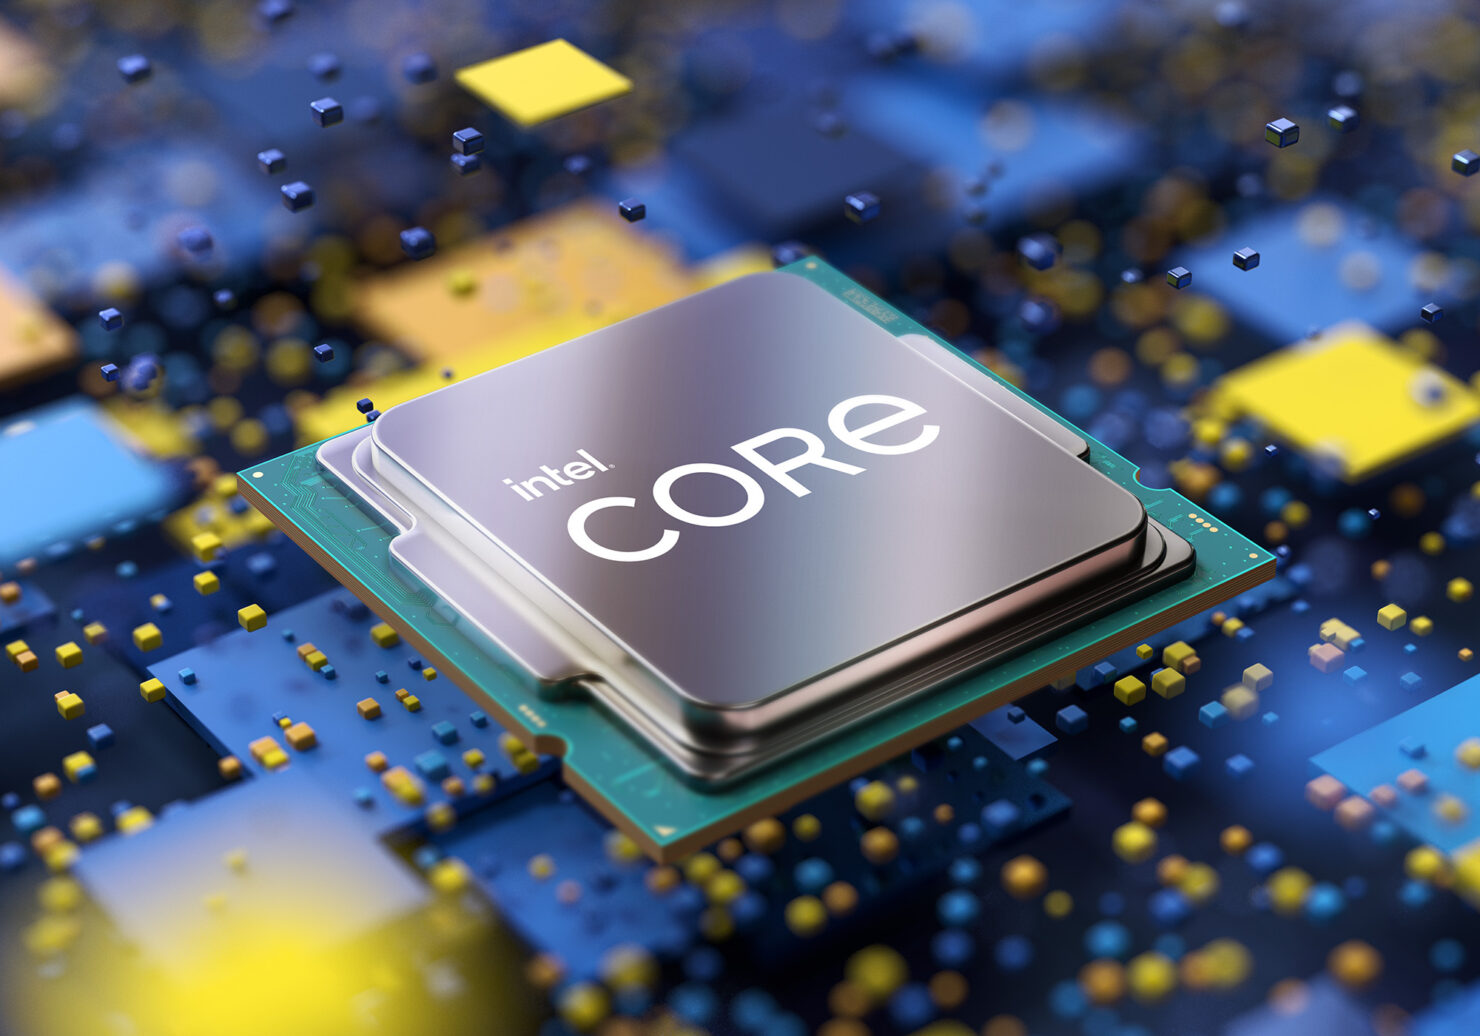 intel-10nm-tiger-lake-cpus-arrive-on-11th-gen-desktop-platforms,-b-series-chips-with-willow-cove-cores-&-65w-tdps